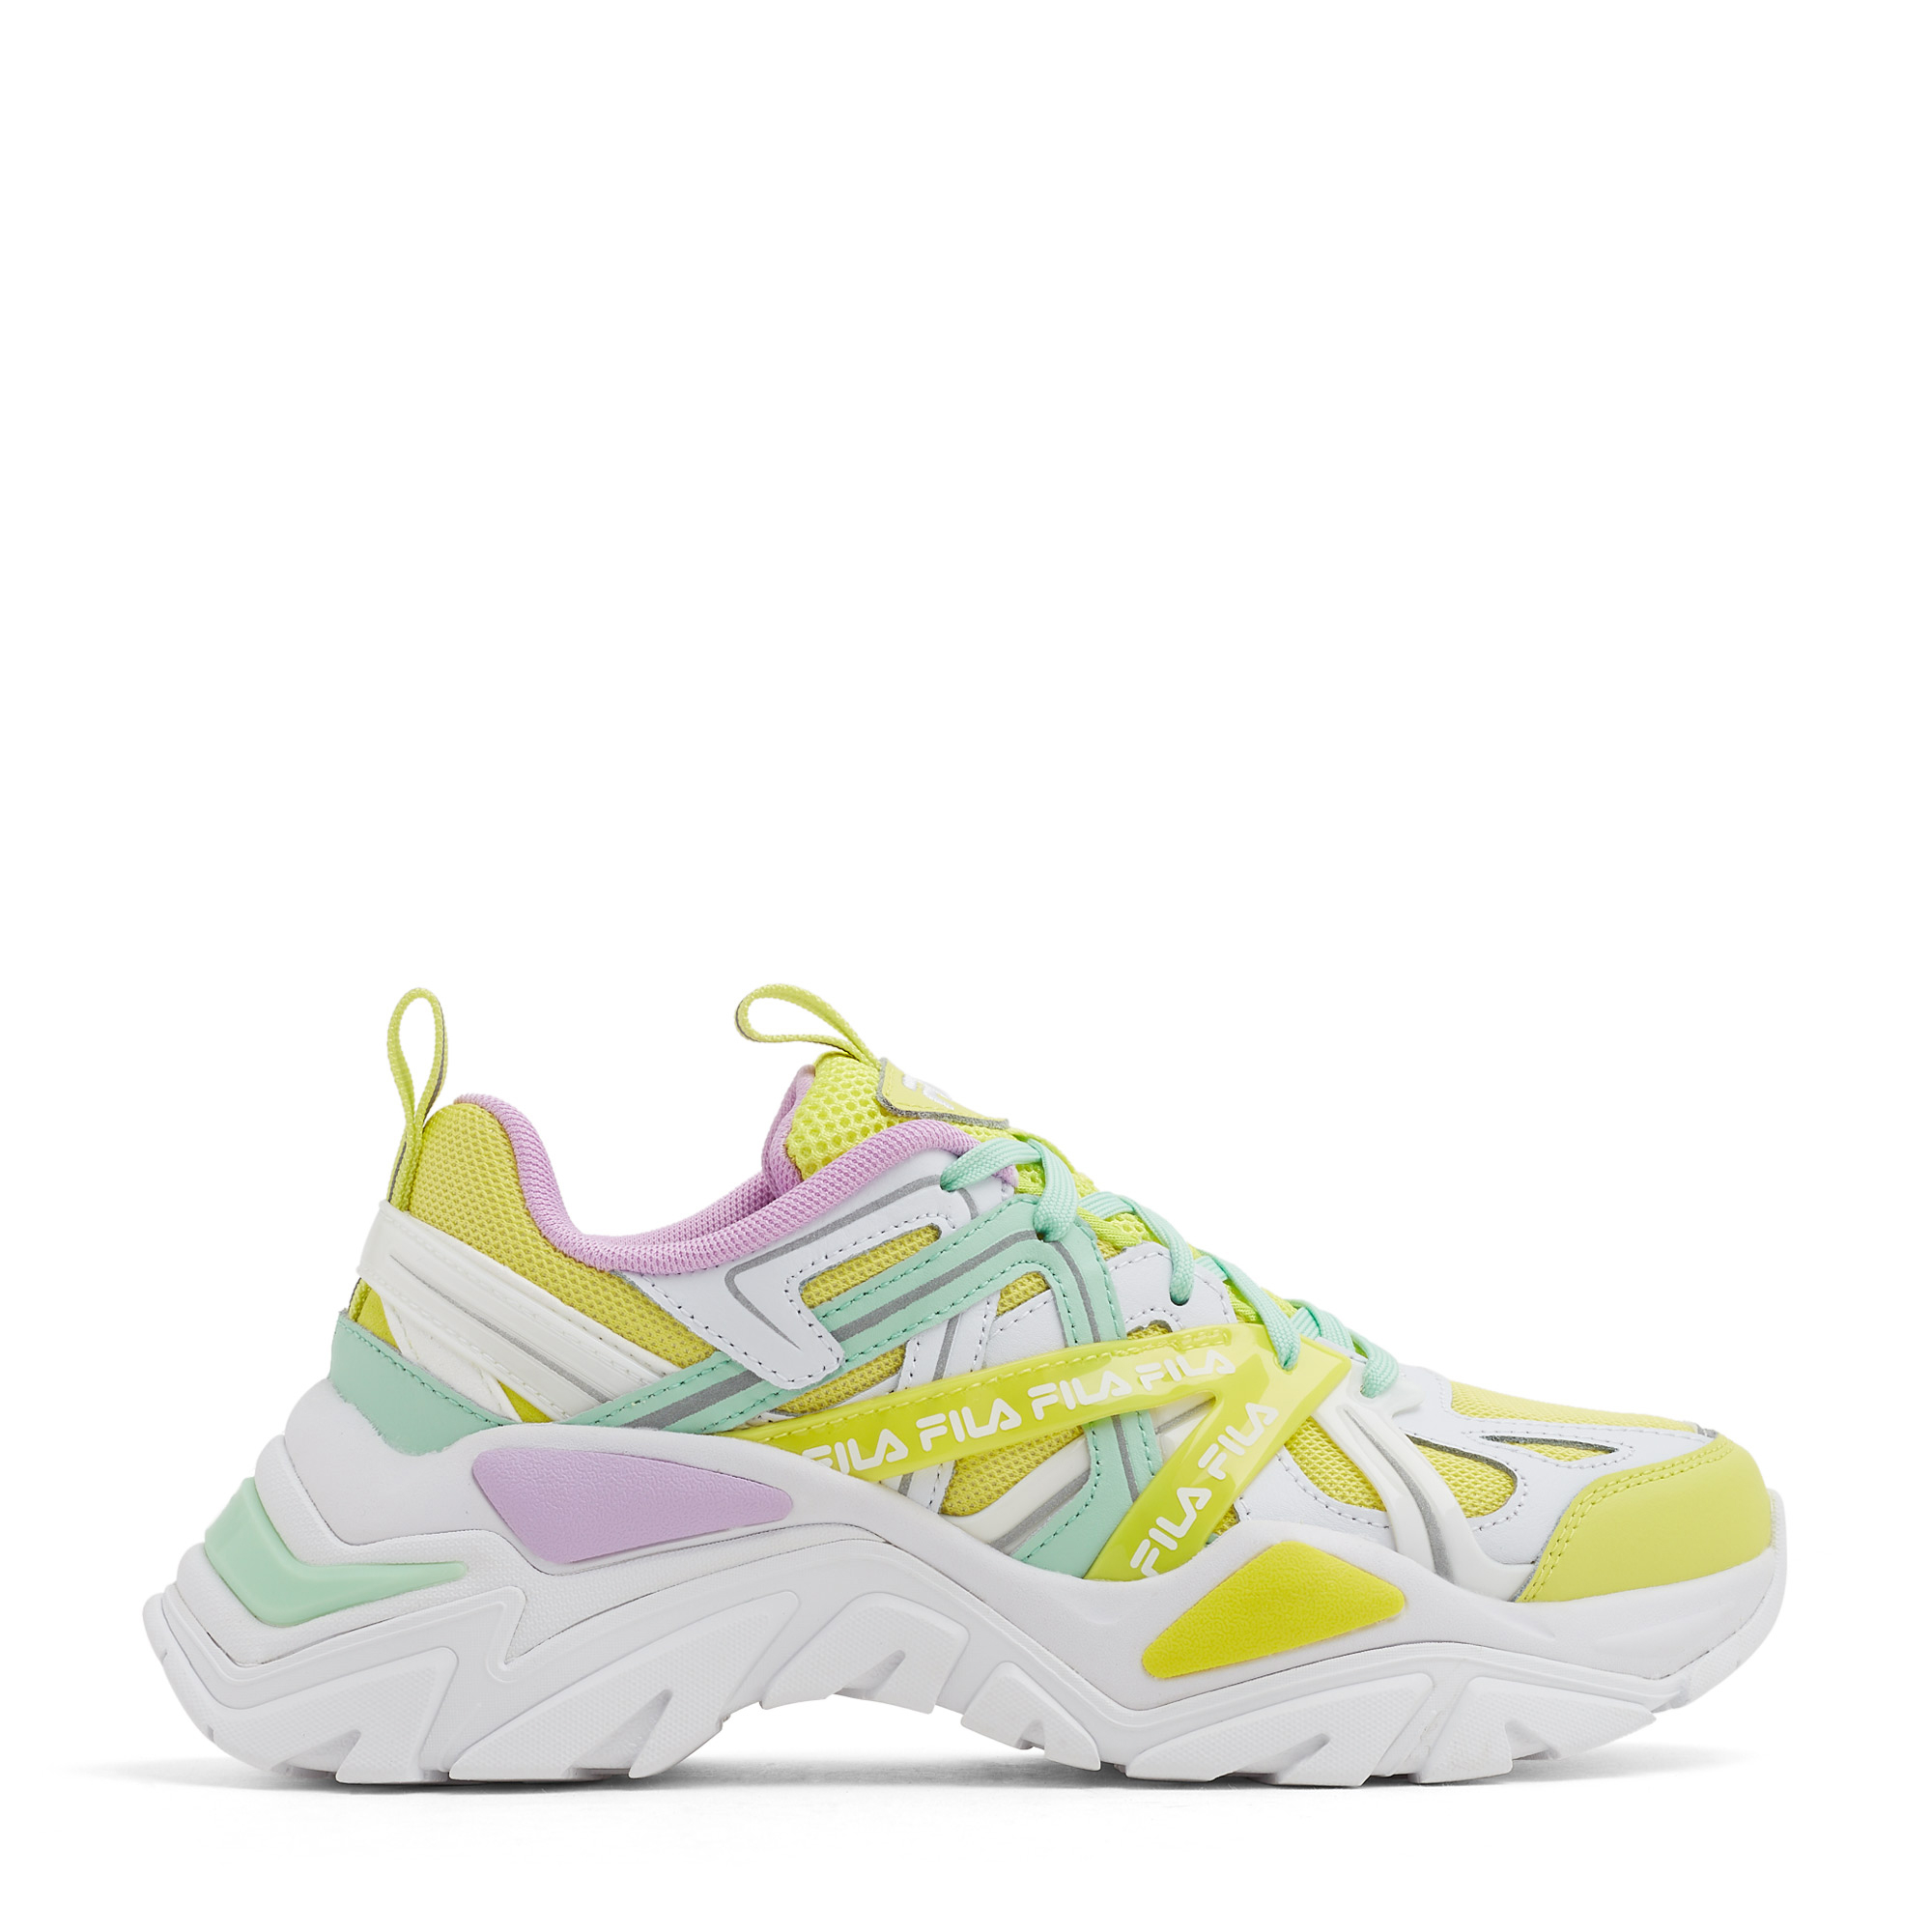 Electrove 2 sneakers